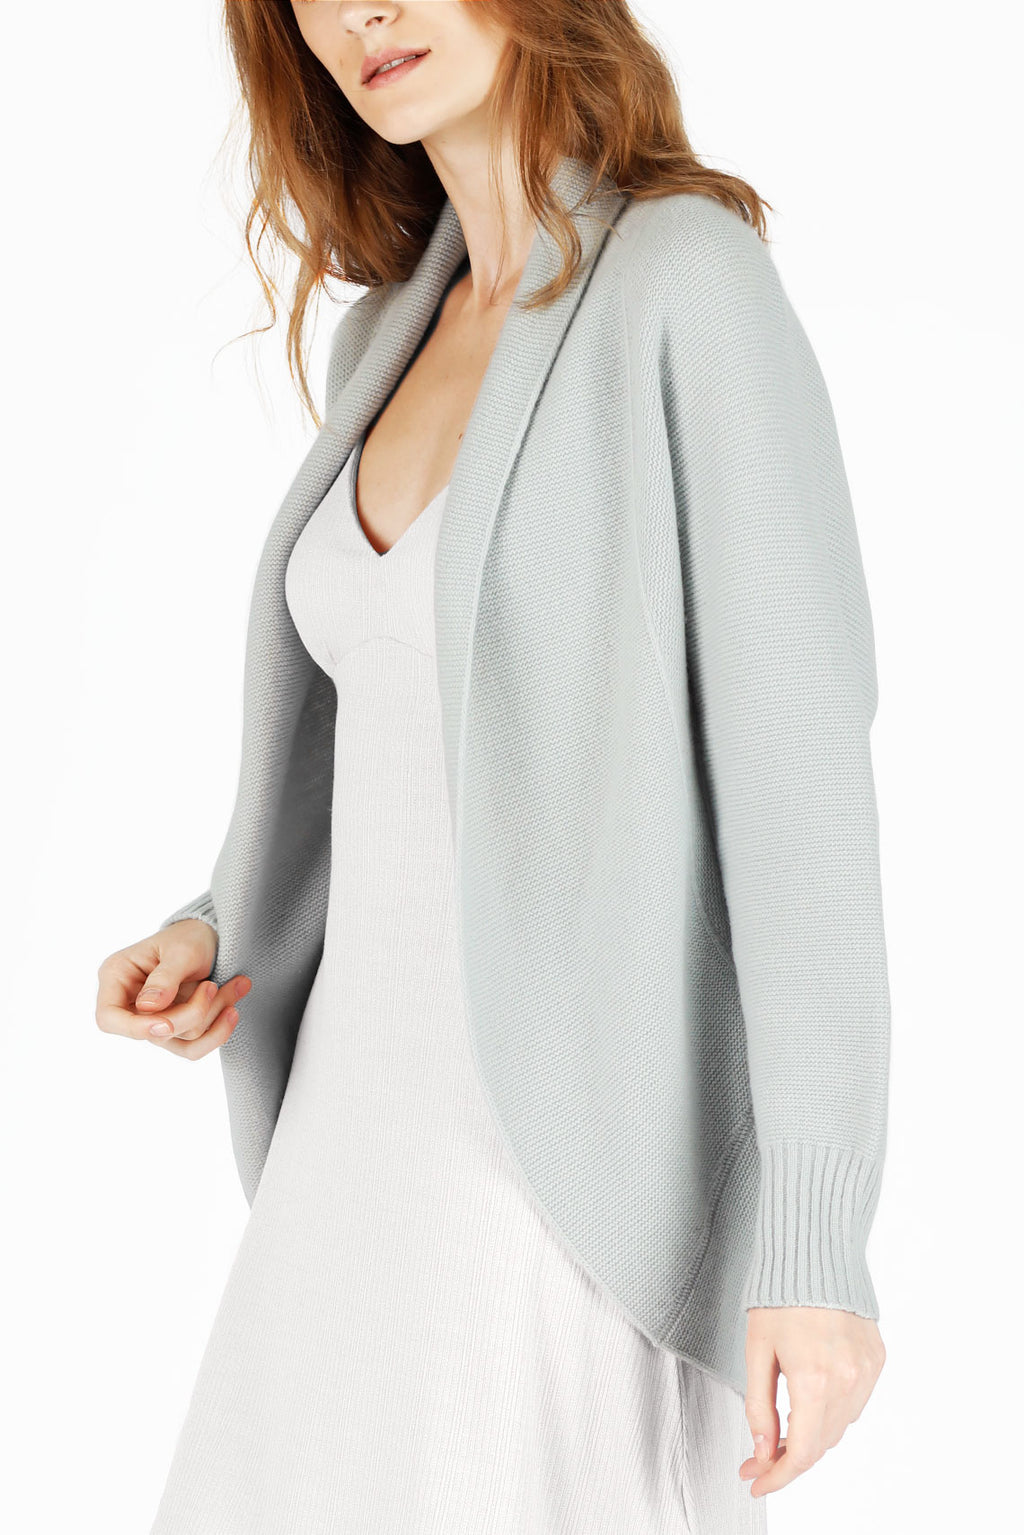 Soft Blue 3D Printed Cashmere Cardigan